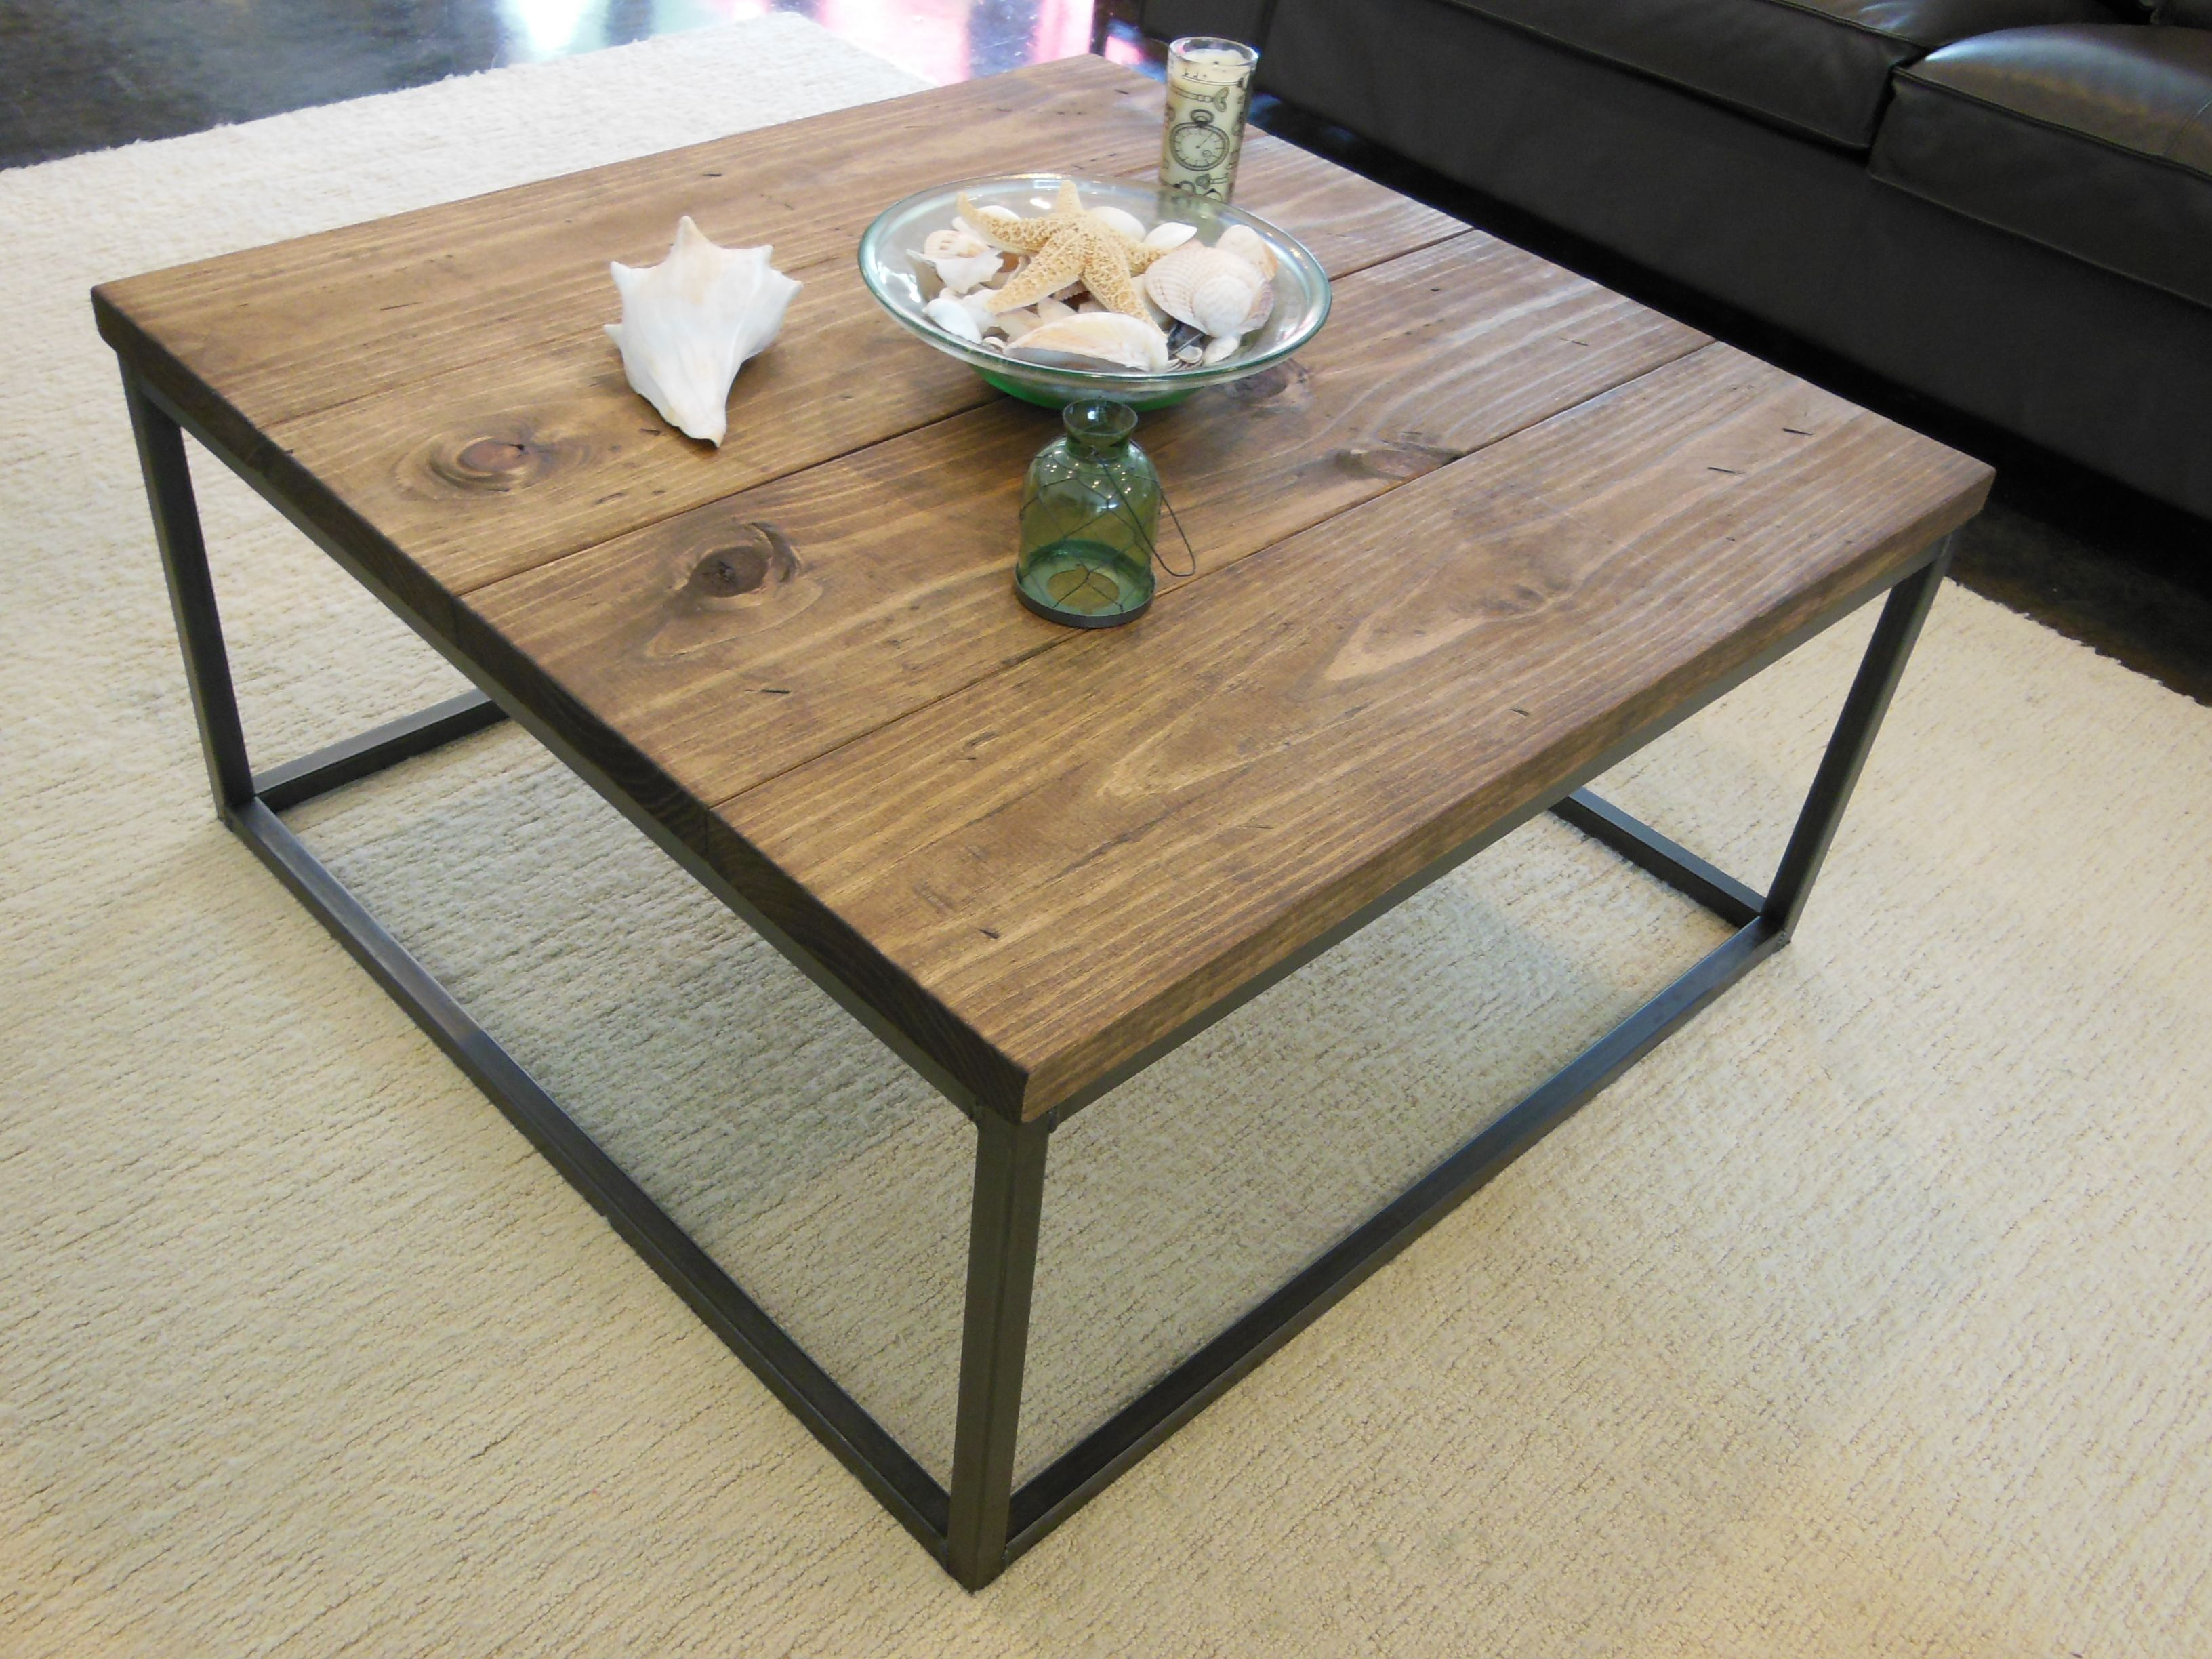 Pin By Atico Furniture On Coffee Side Tables Coffee Table Cube Coffee Table Table [ 2448 x 3264 Pixel ]